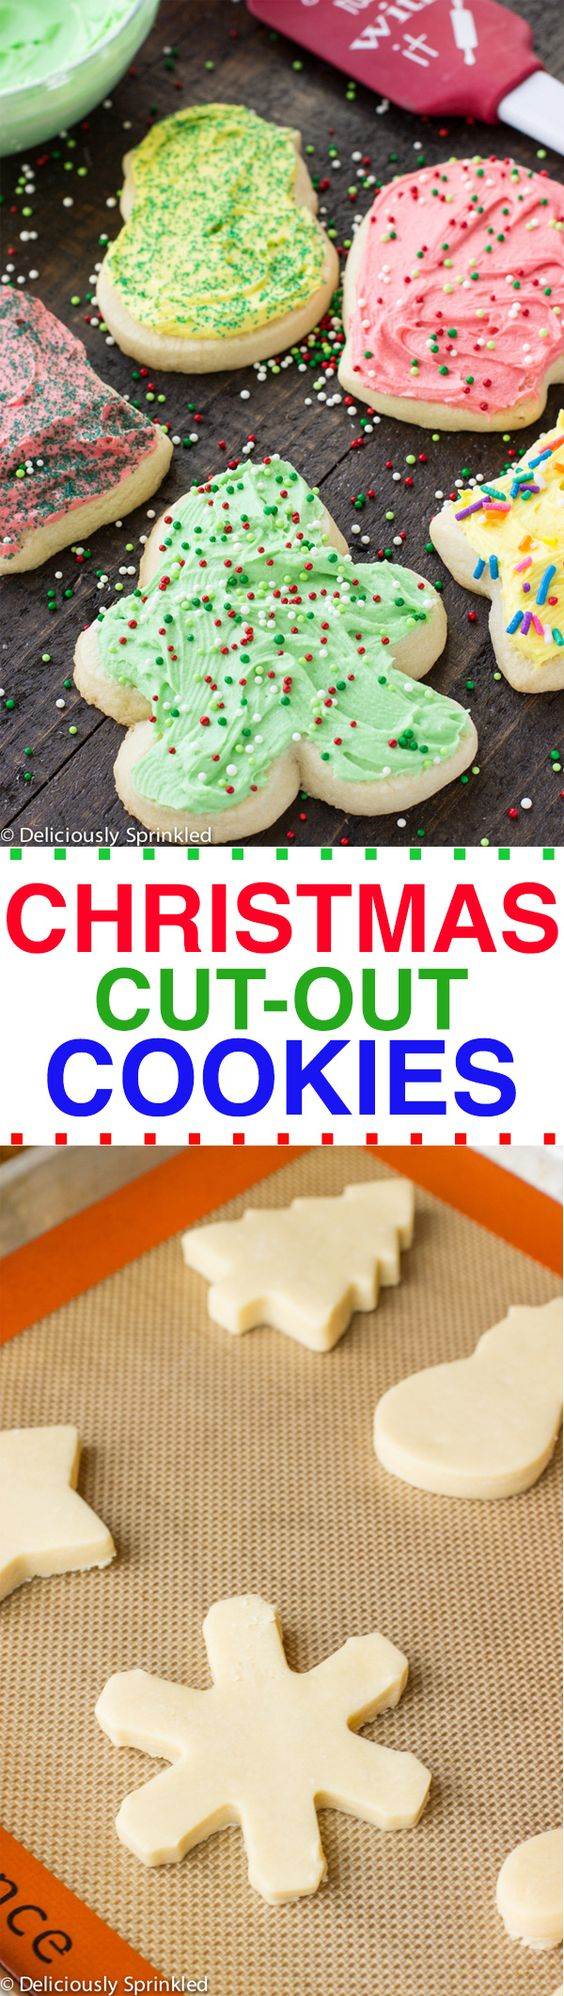 Christmas Cut Out Cookies Deliciously Sprinkled